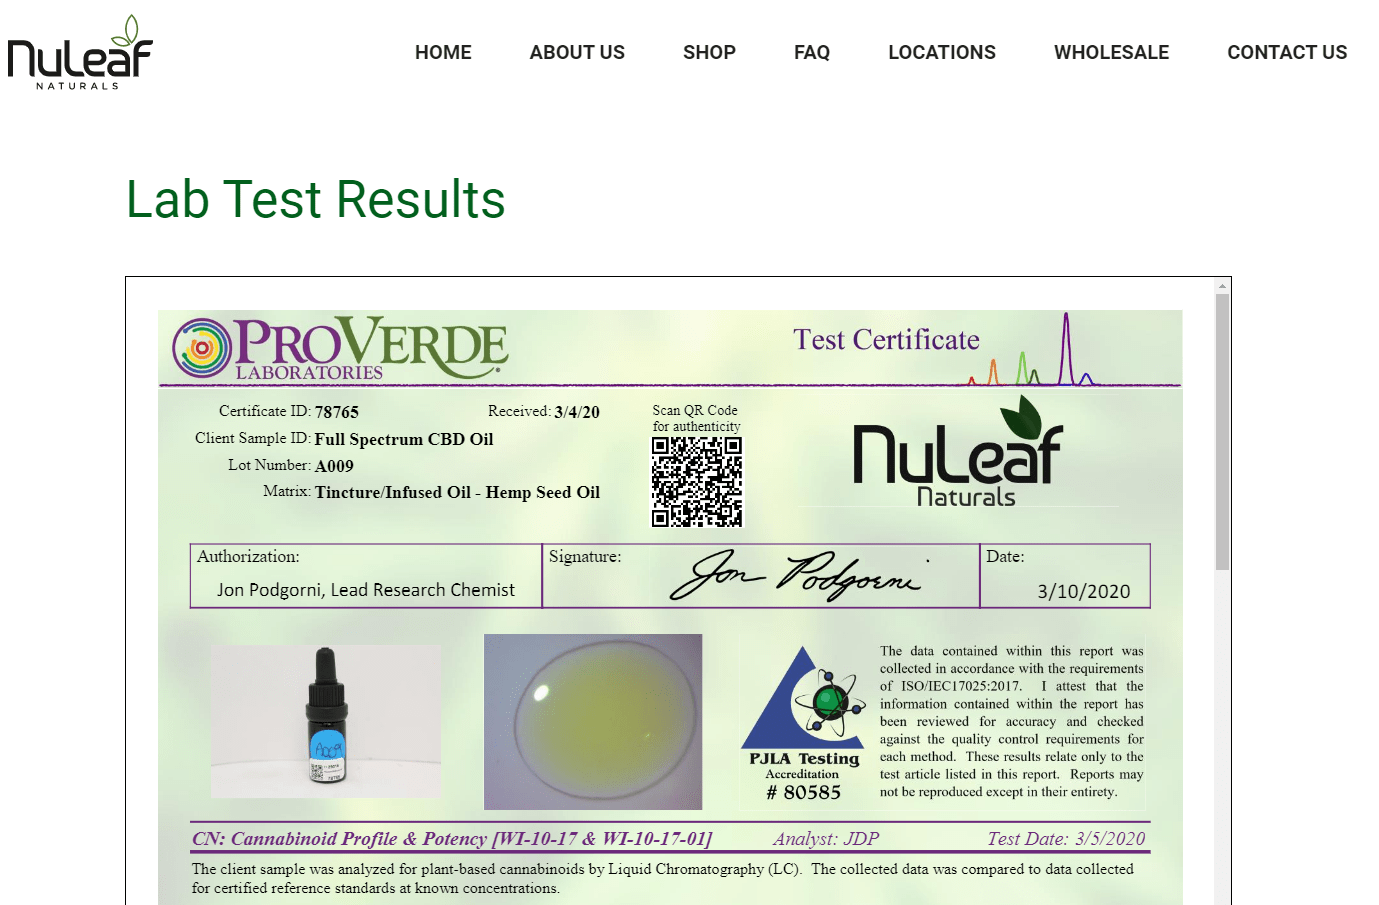 Nuleaf results 1